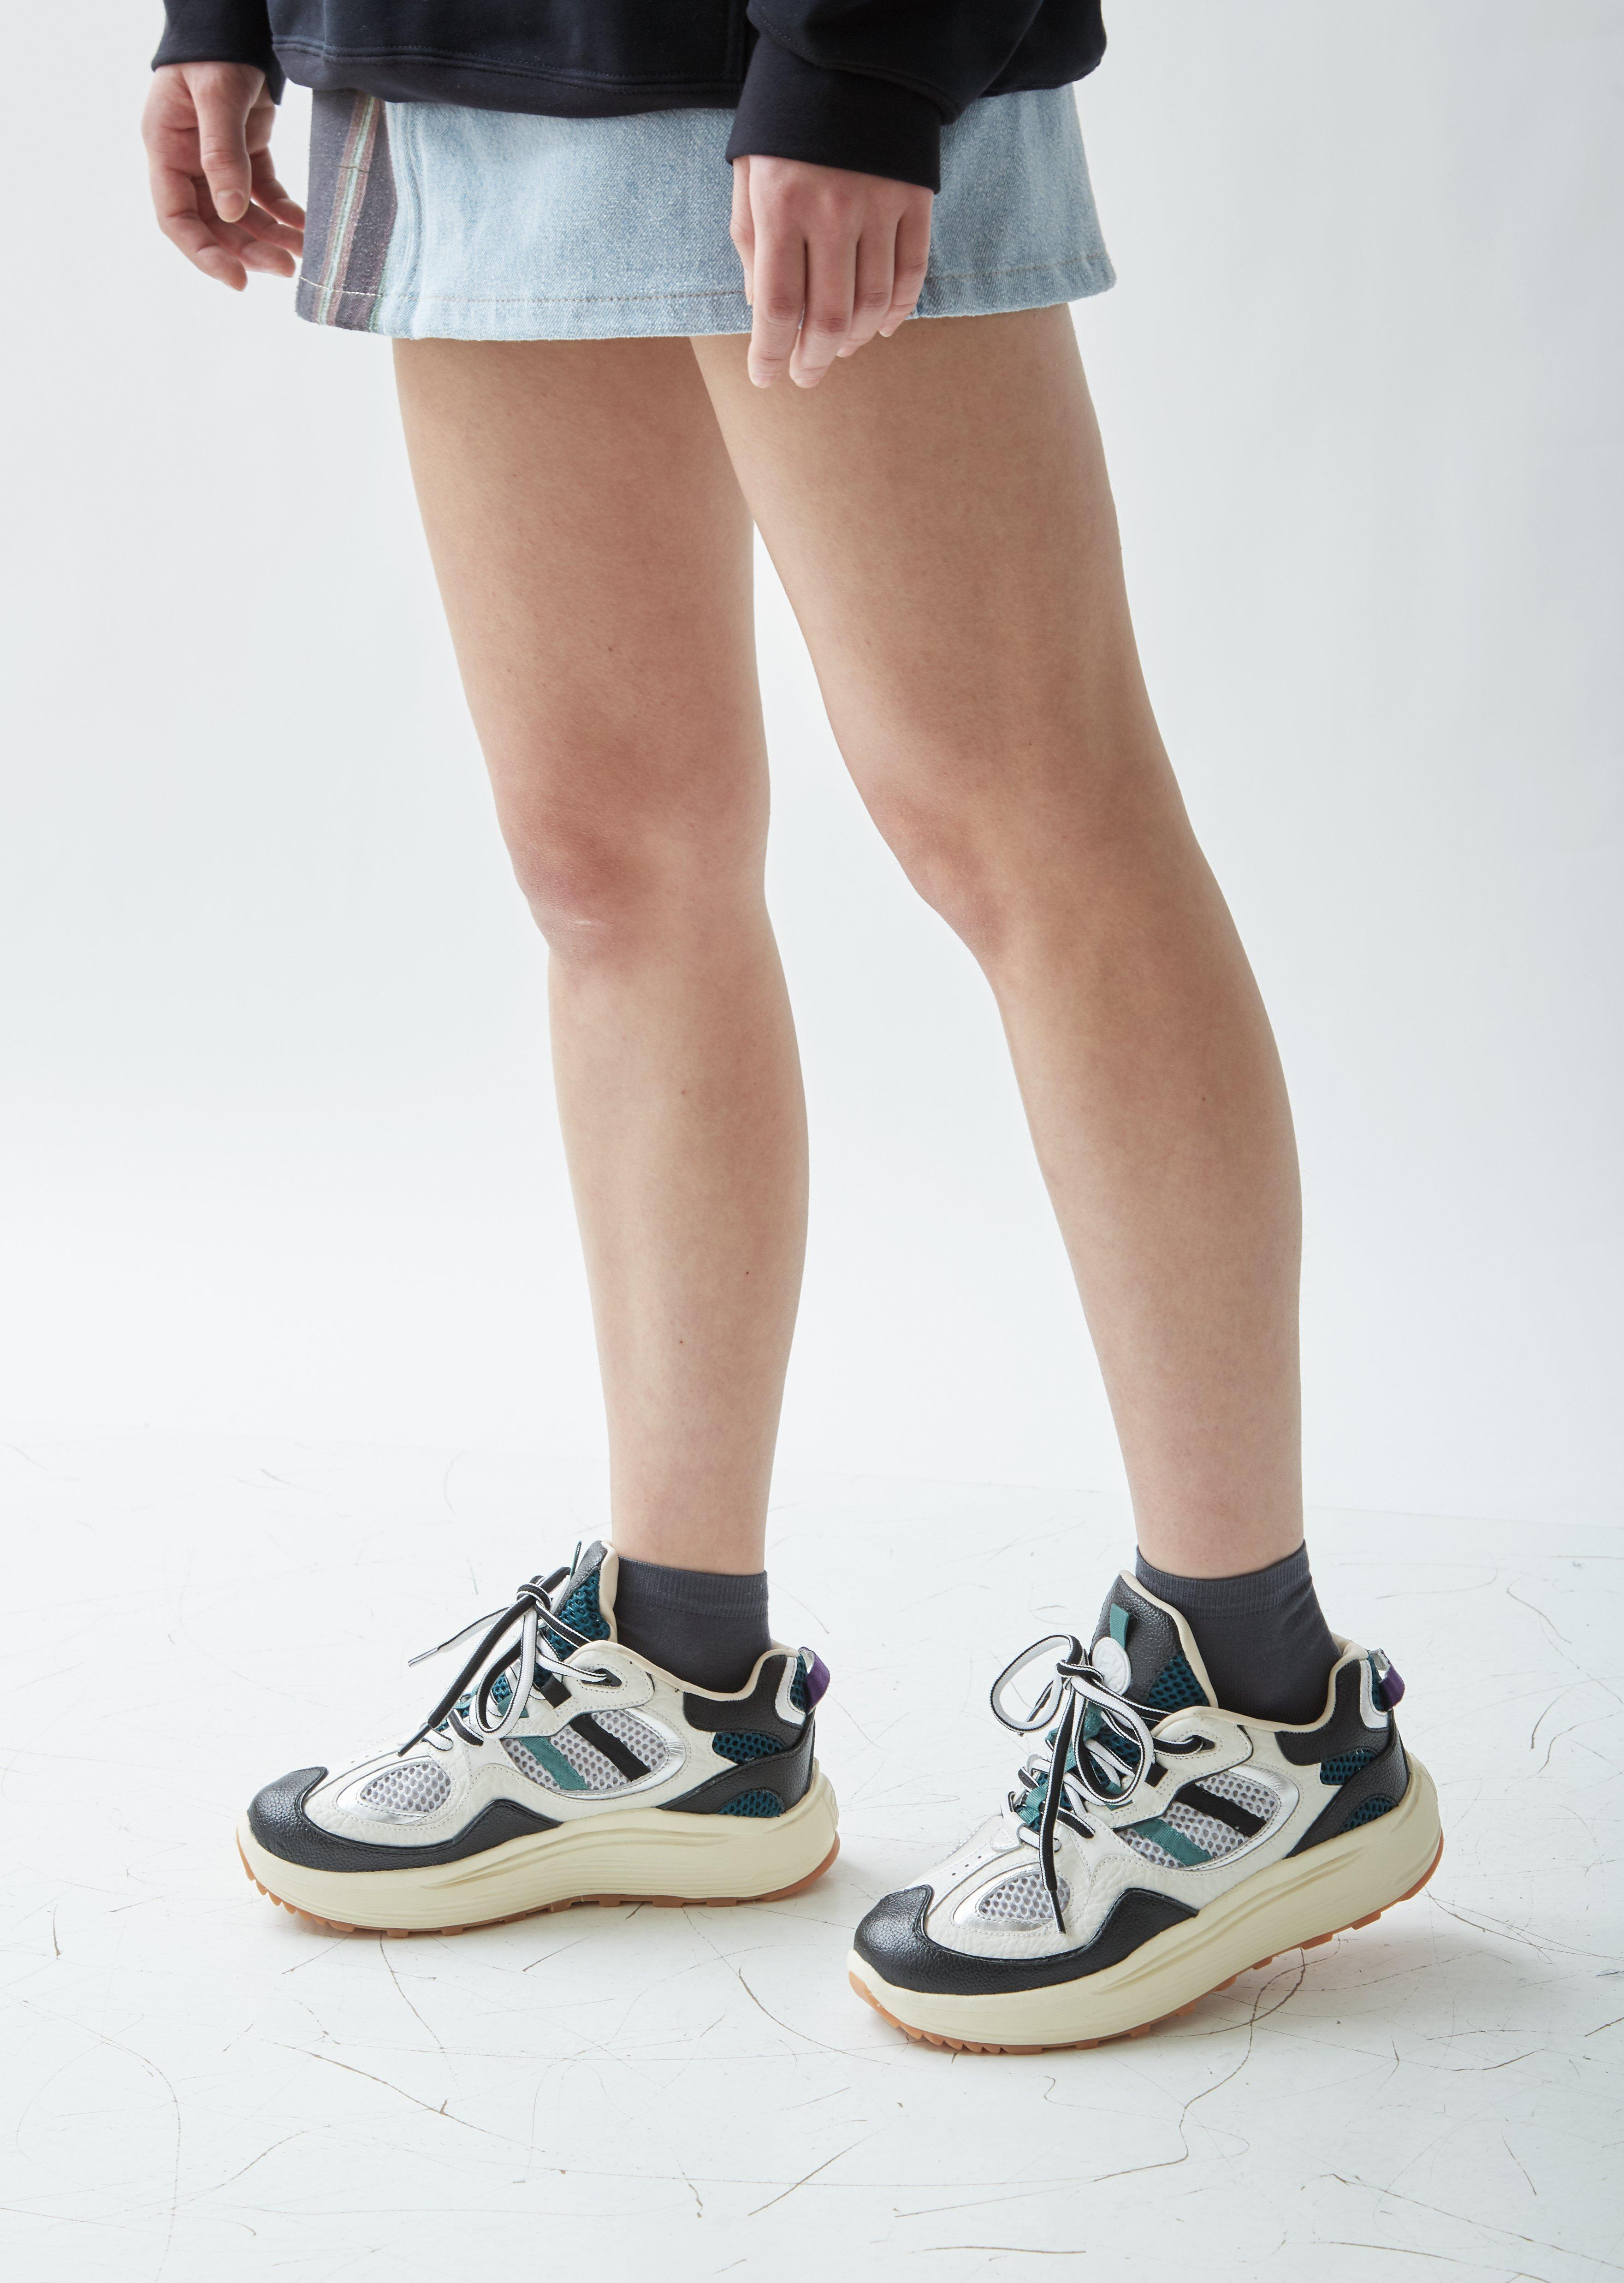 Eytys Jet Turbo Leather Sneakers in